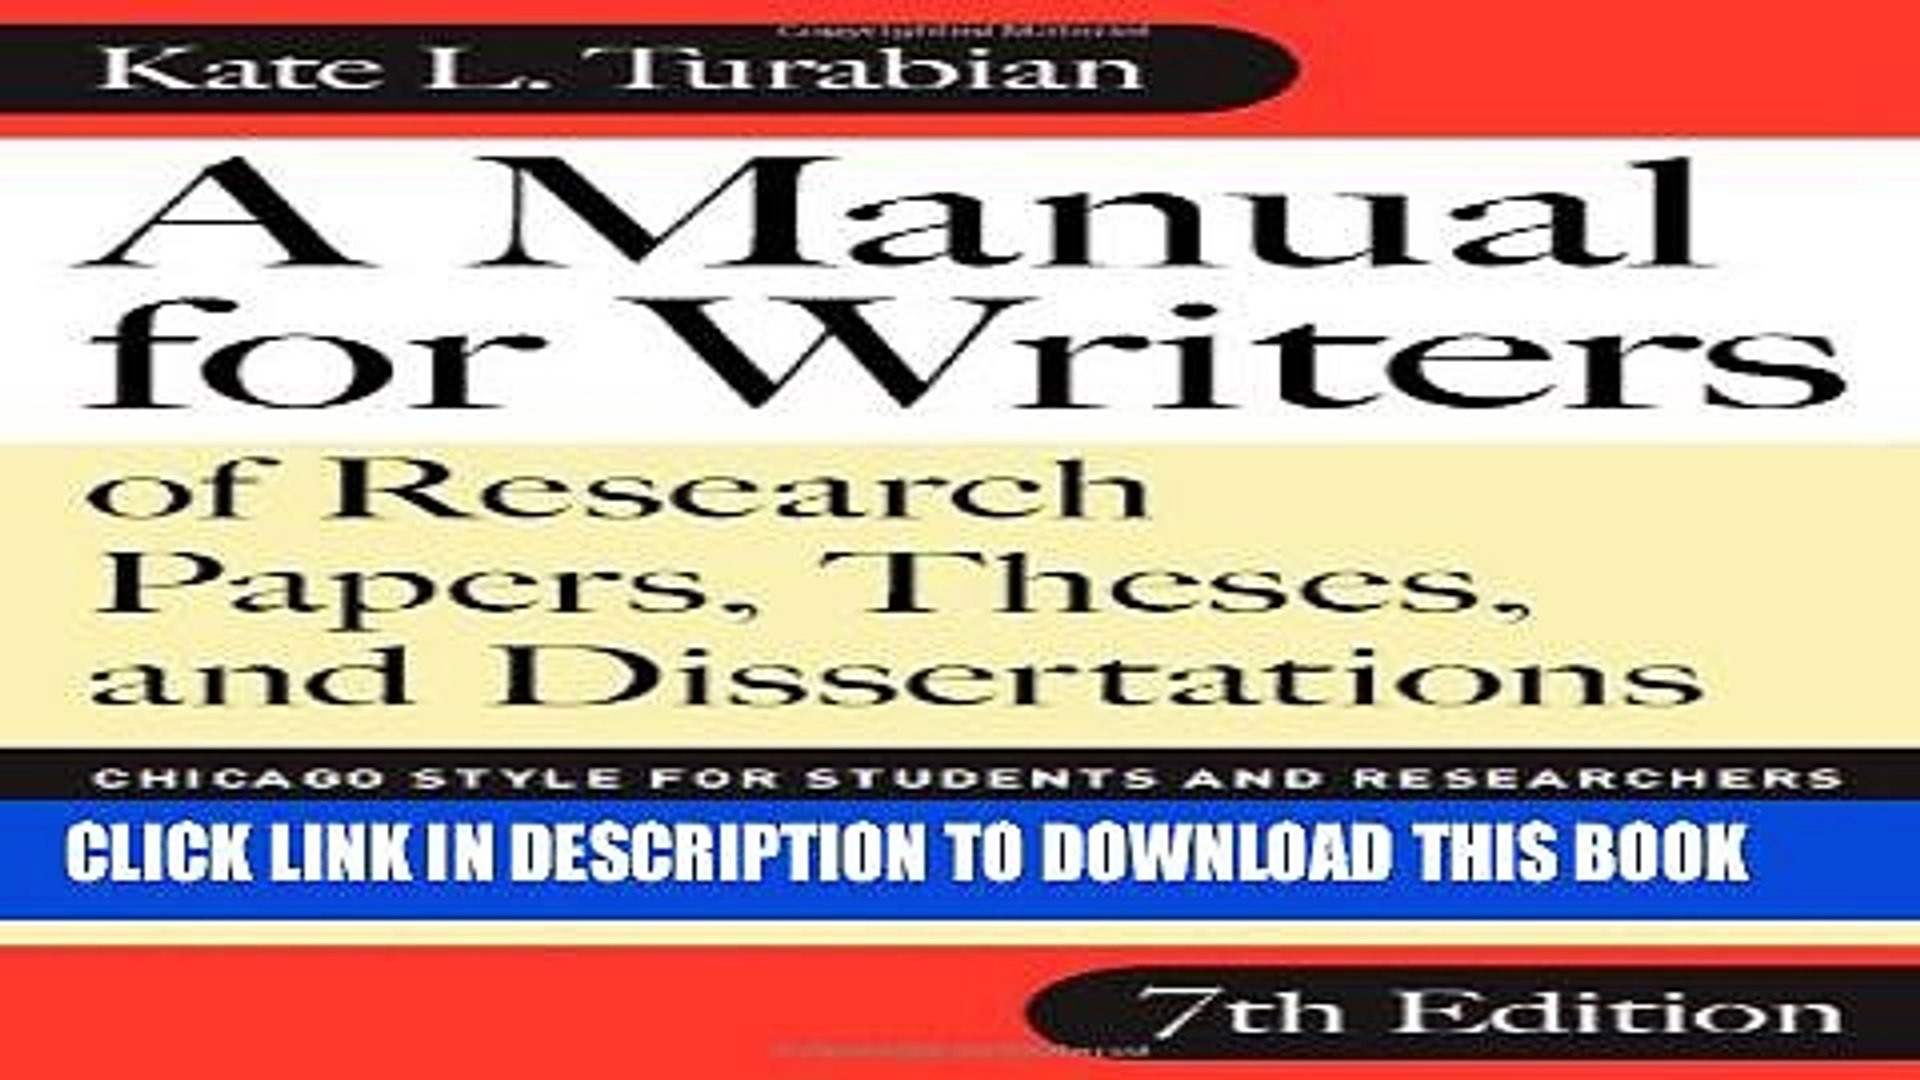 021 Research Paper Manual For Writers Of Papers Theses And Dissertations X1080 Sensational A Ed. 8 Turabian Ninth Edition 1920